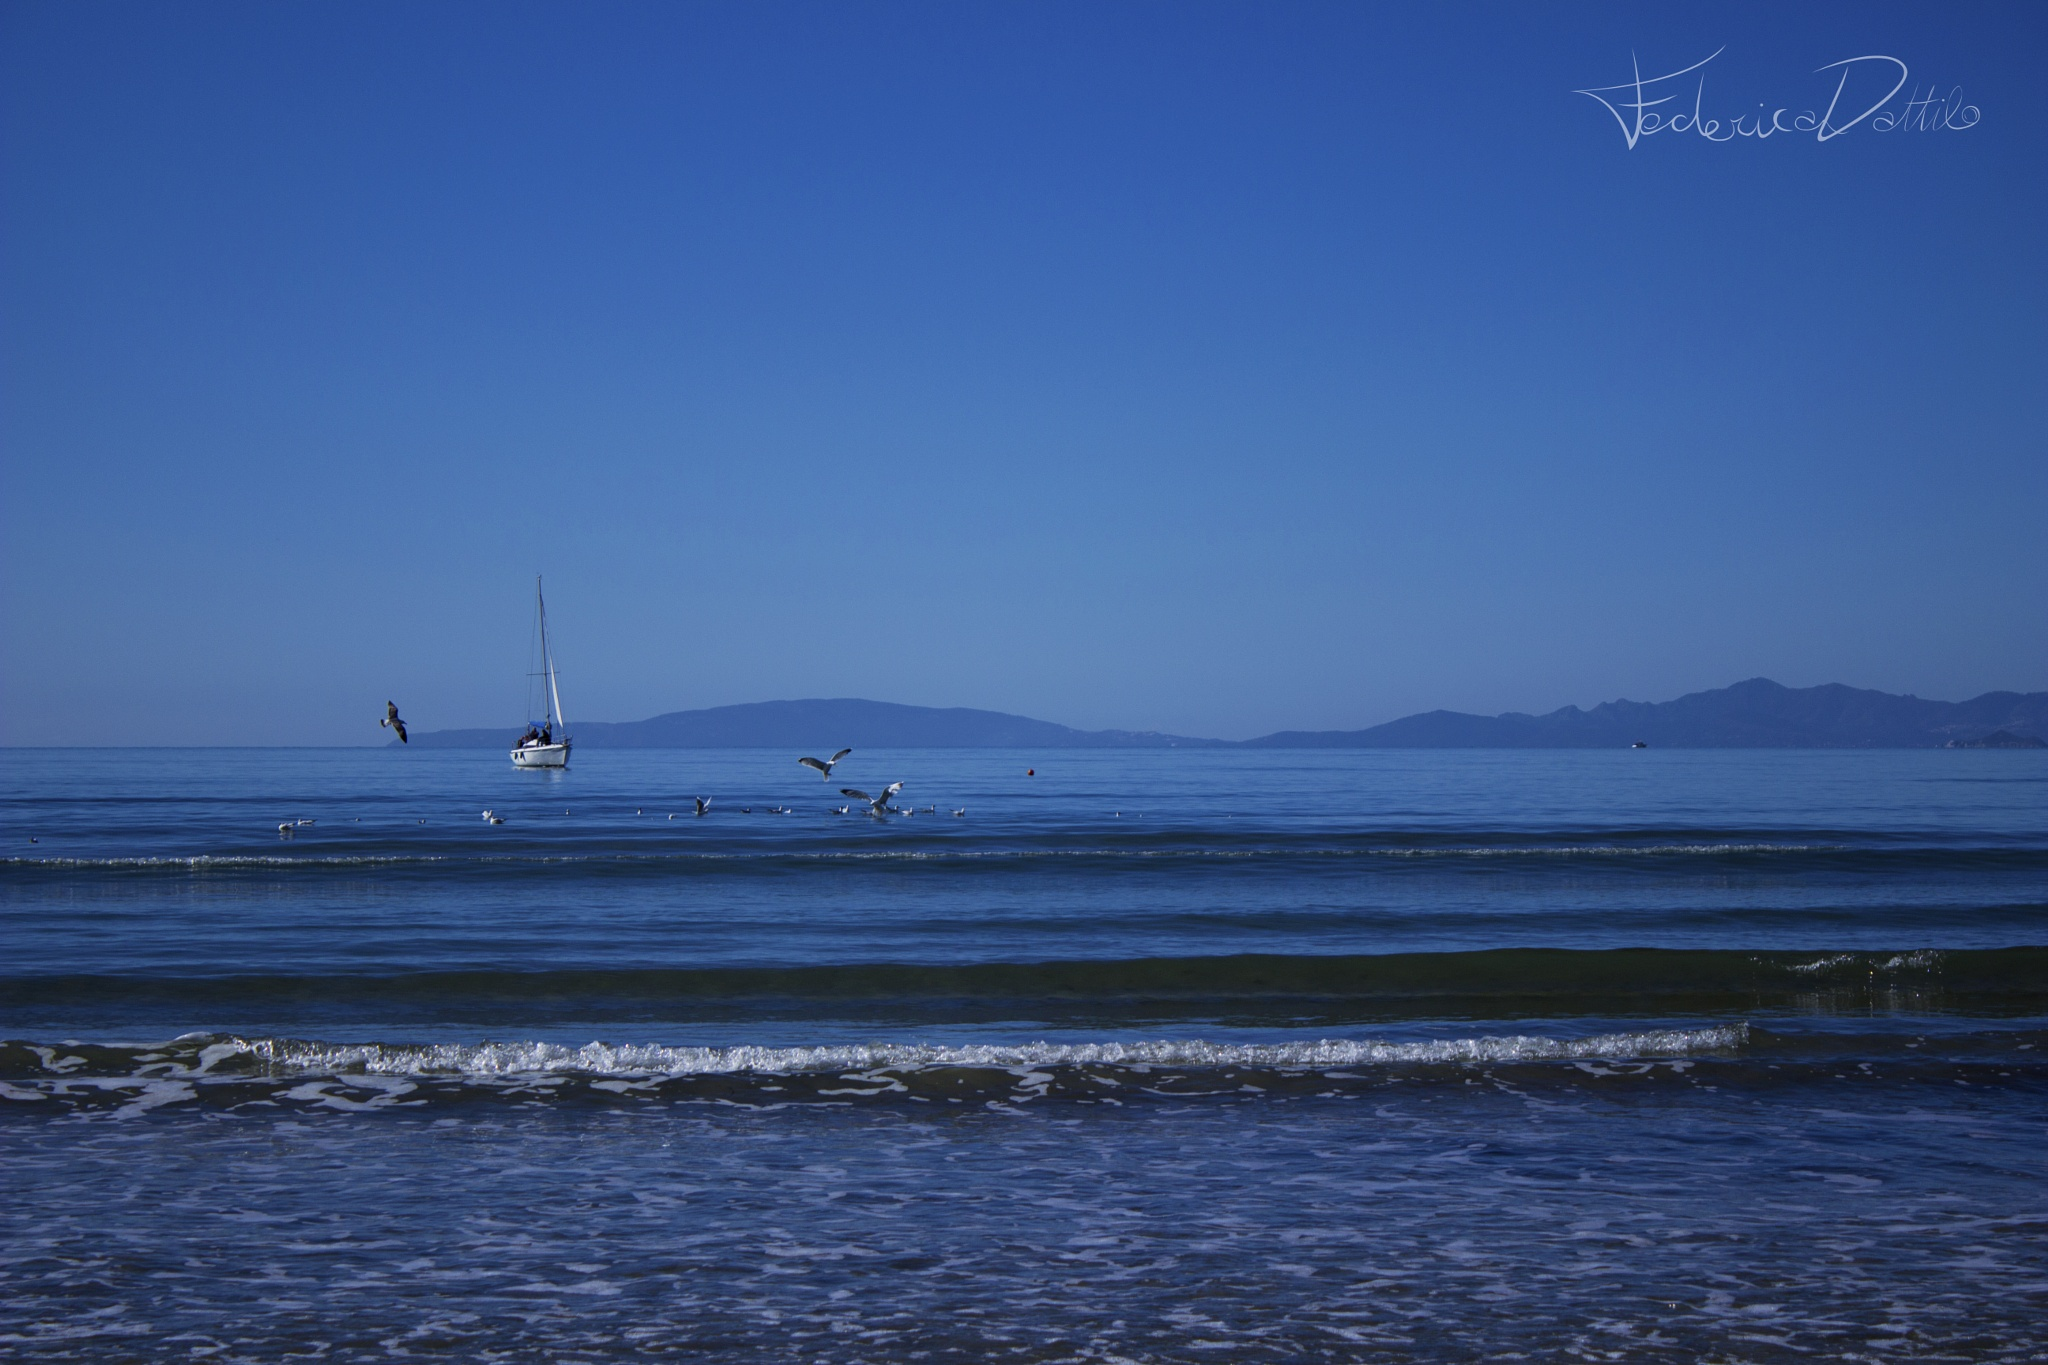 Bird and Boat. by Pterodattilo